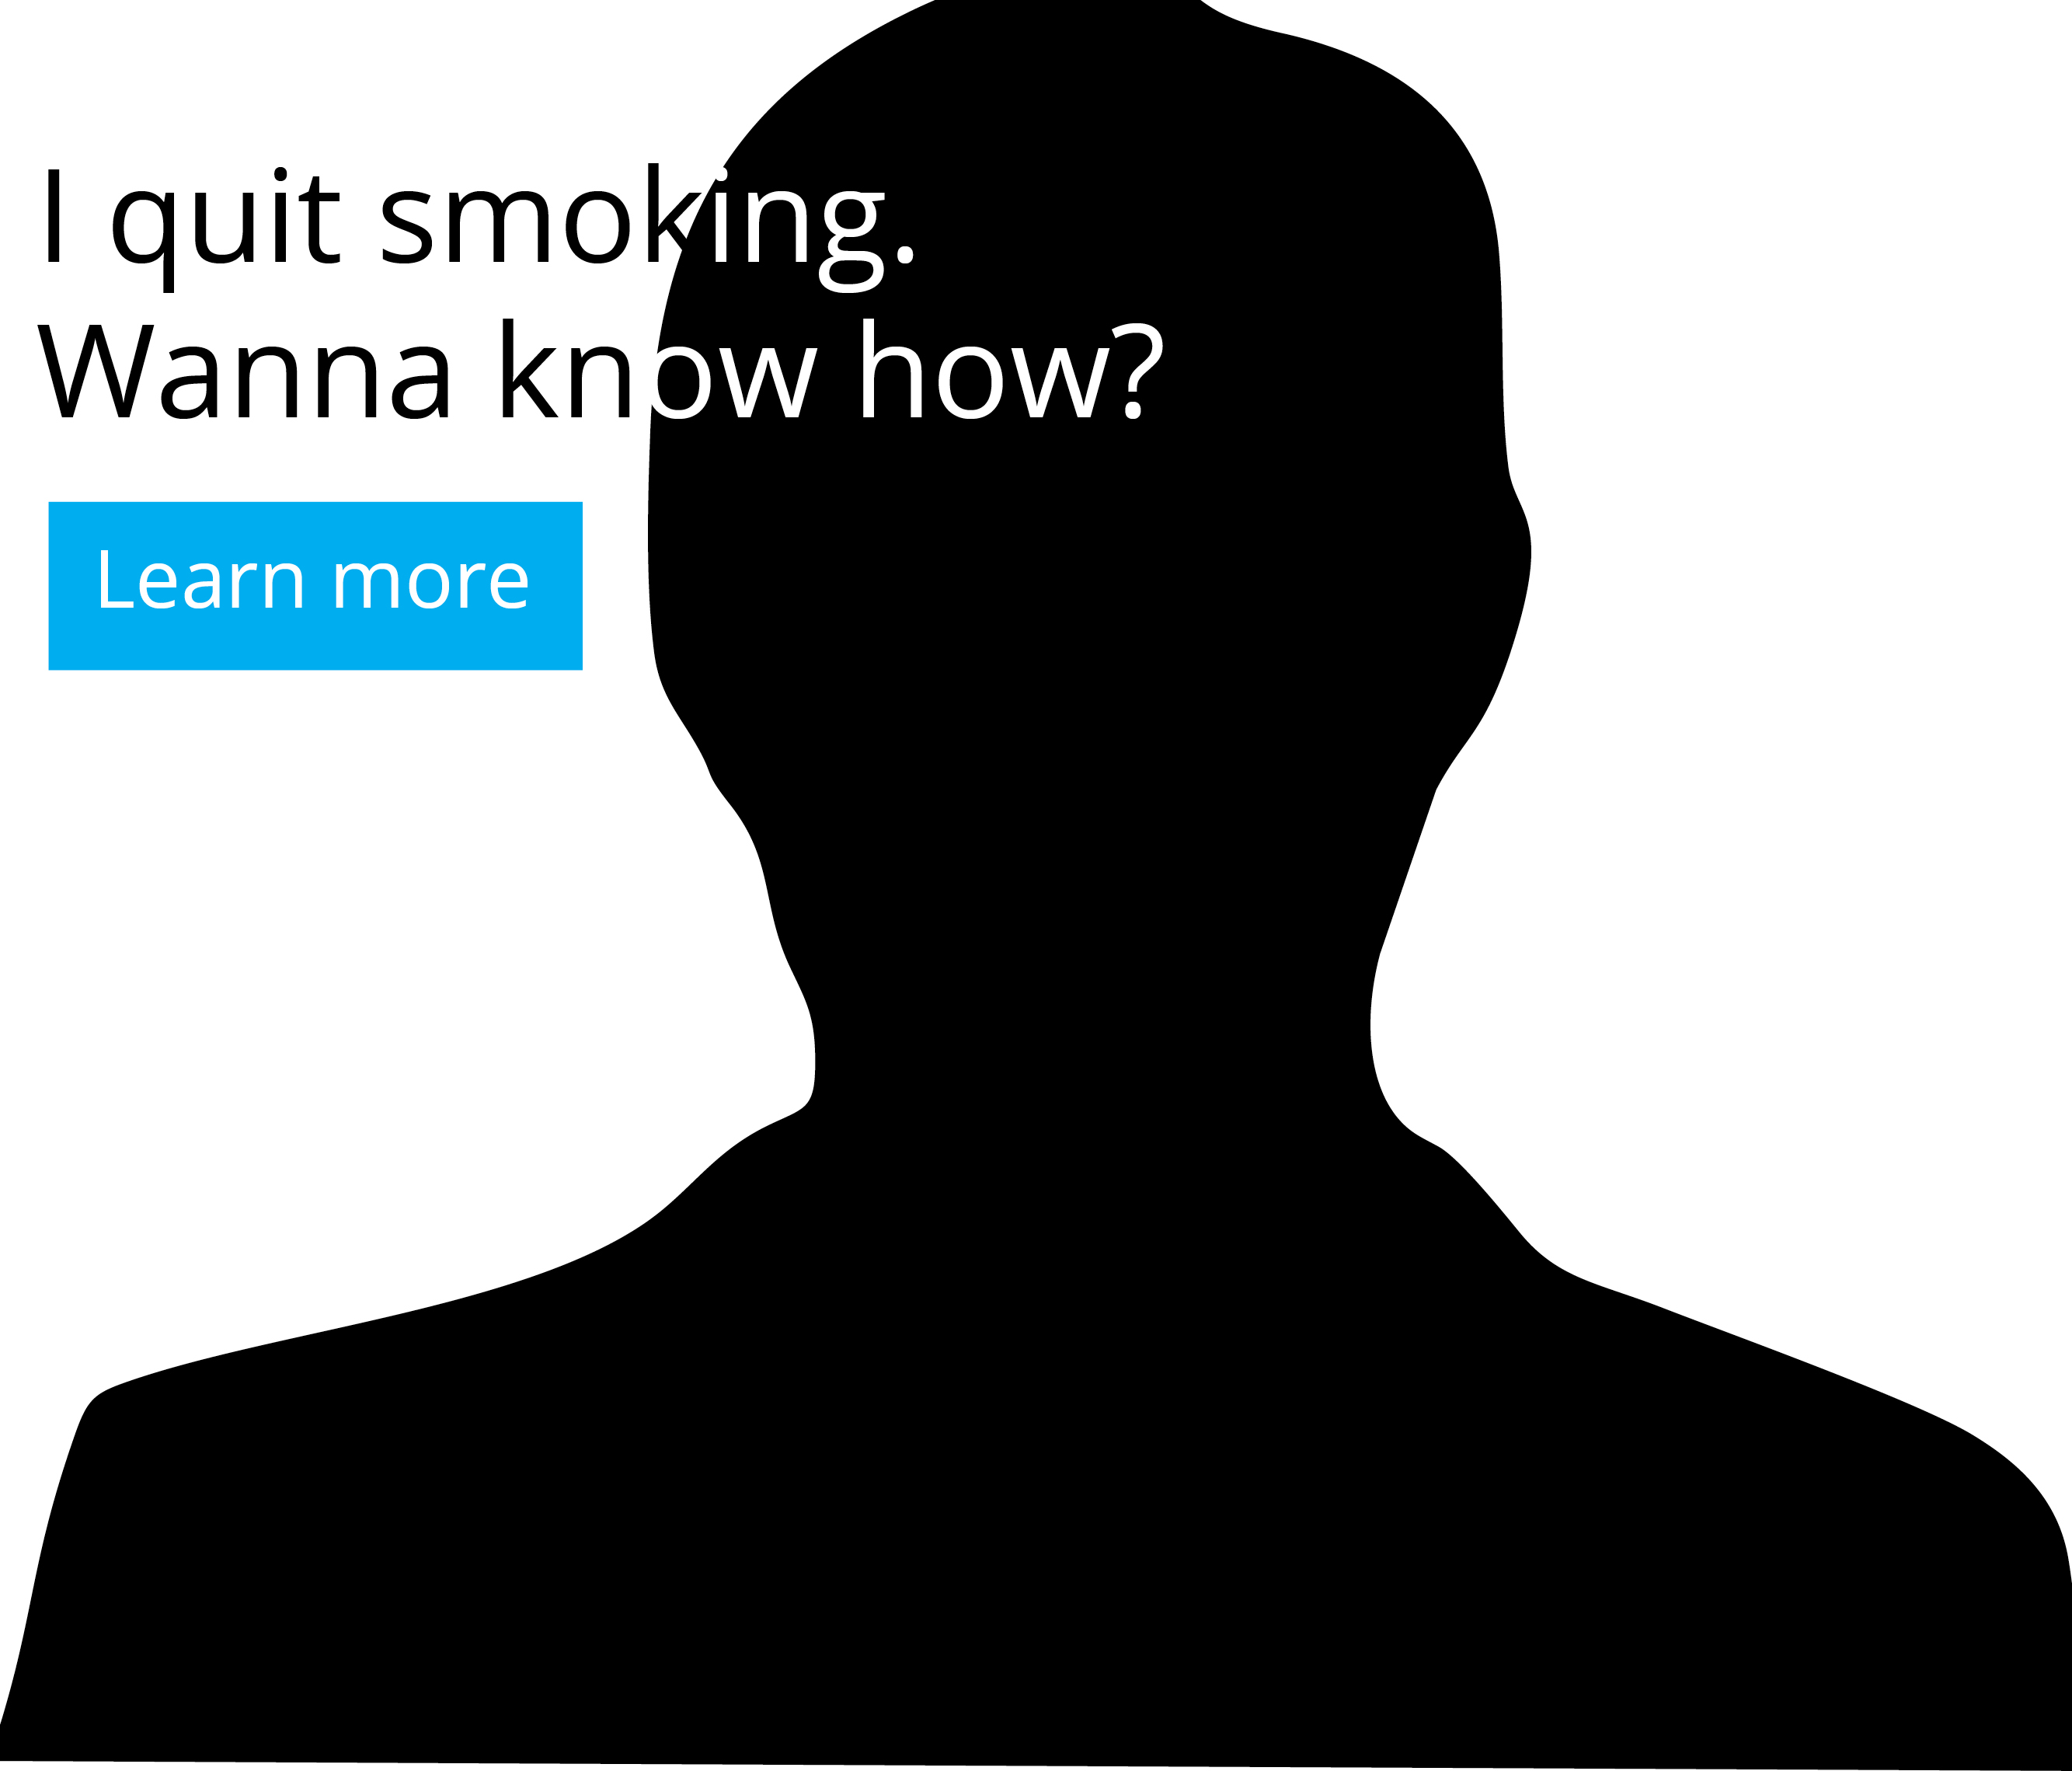 I quit smoking. Wanna know how?